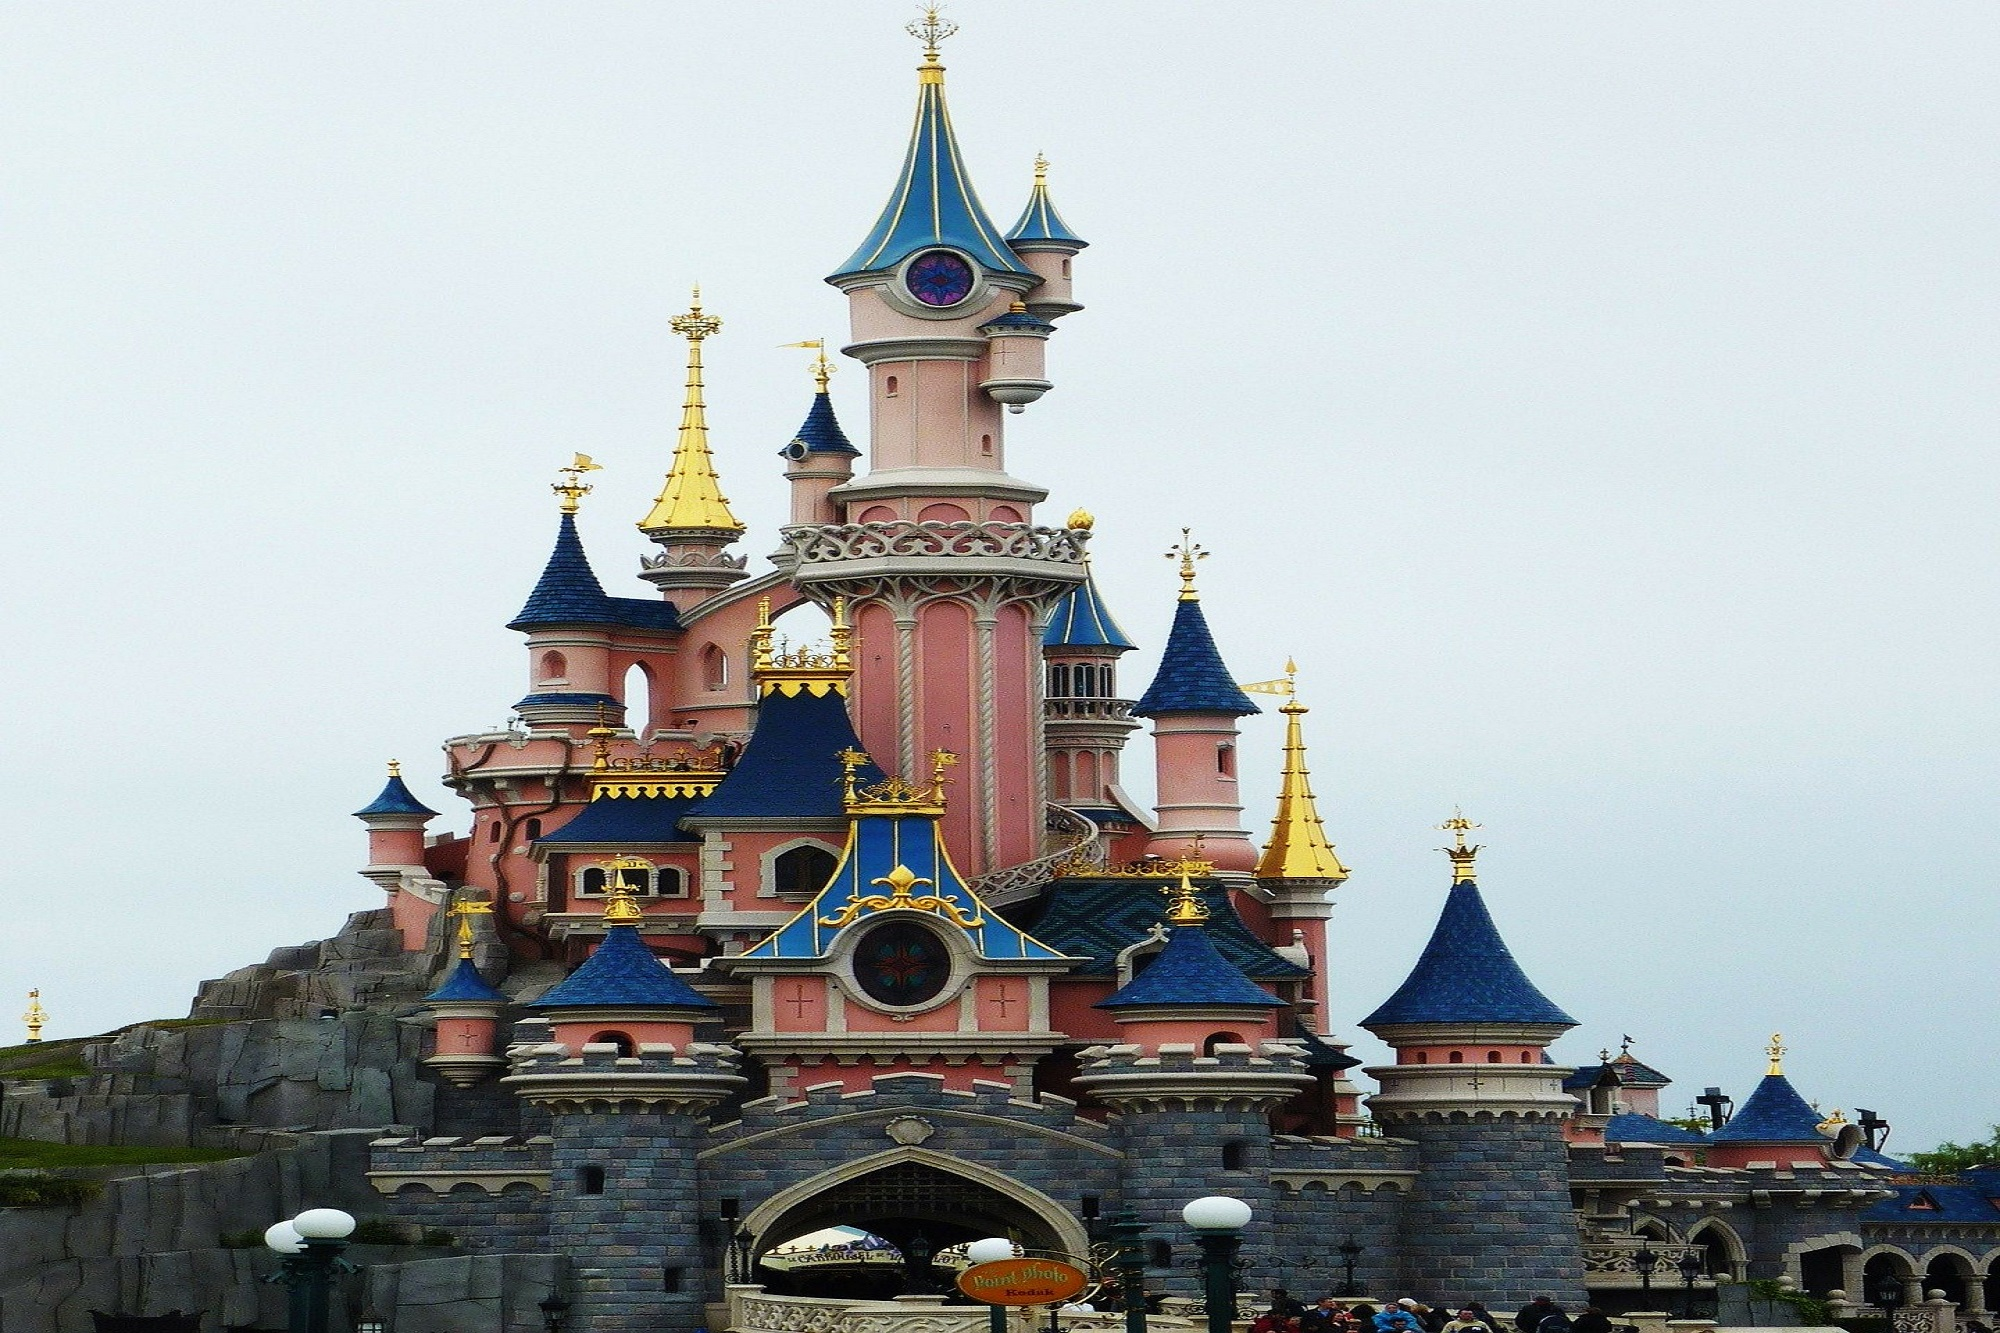 disneyland-paris-234579_1920